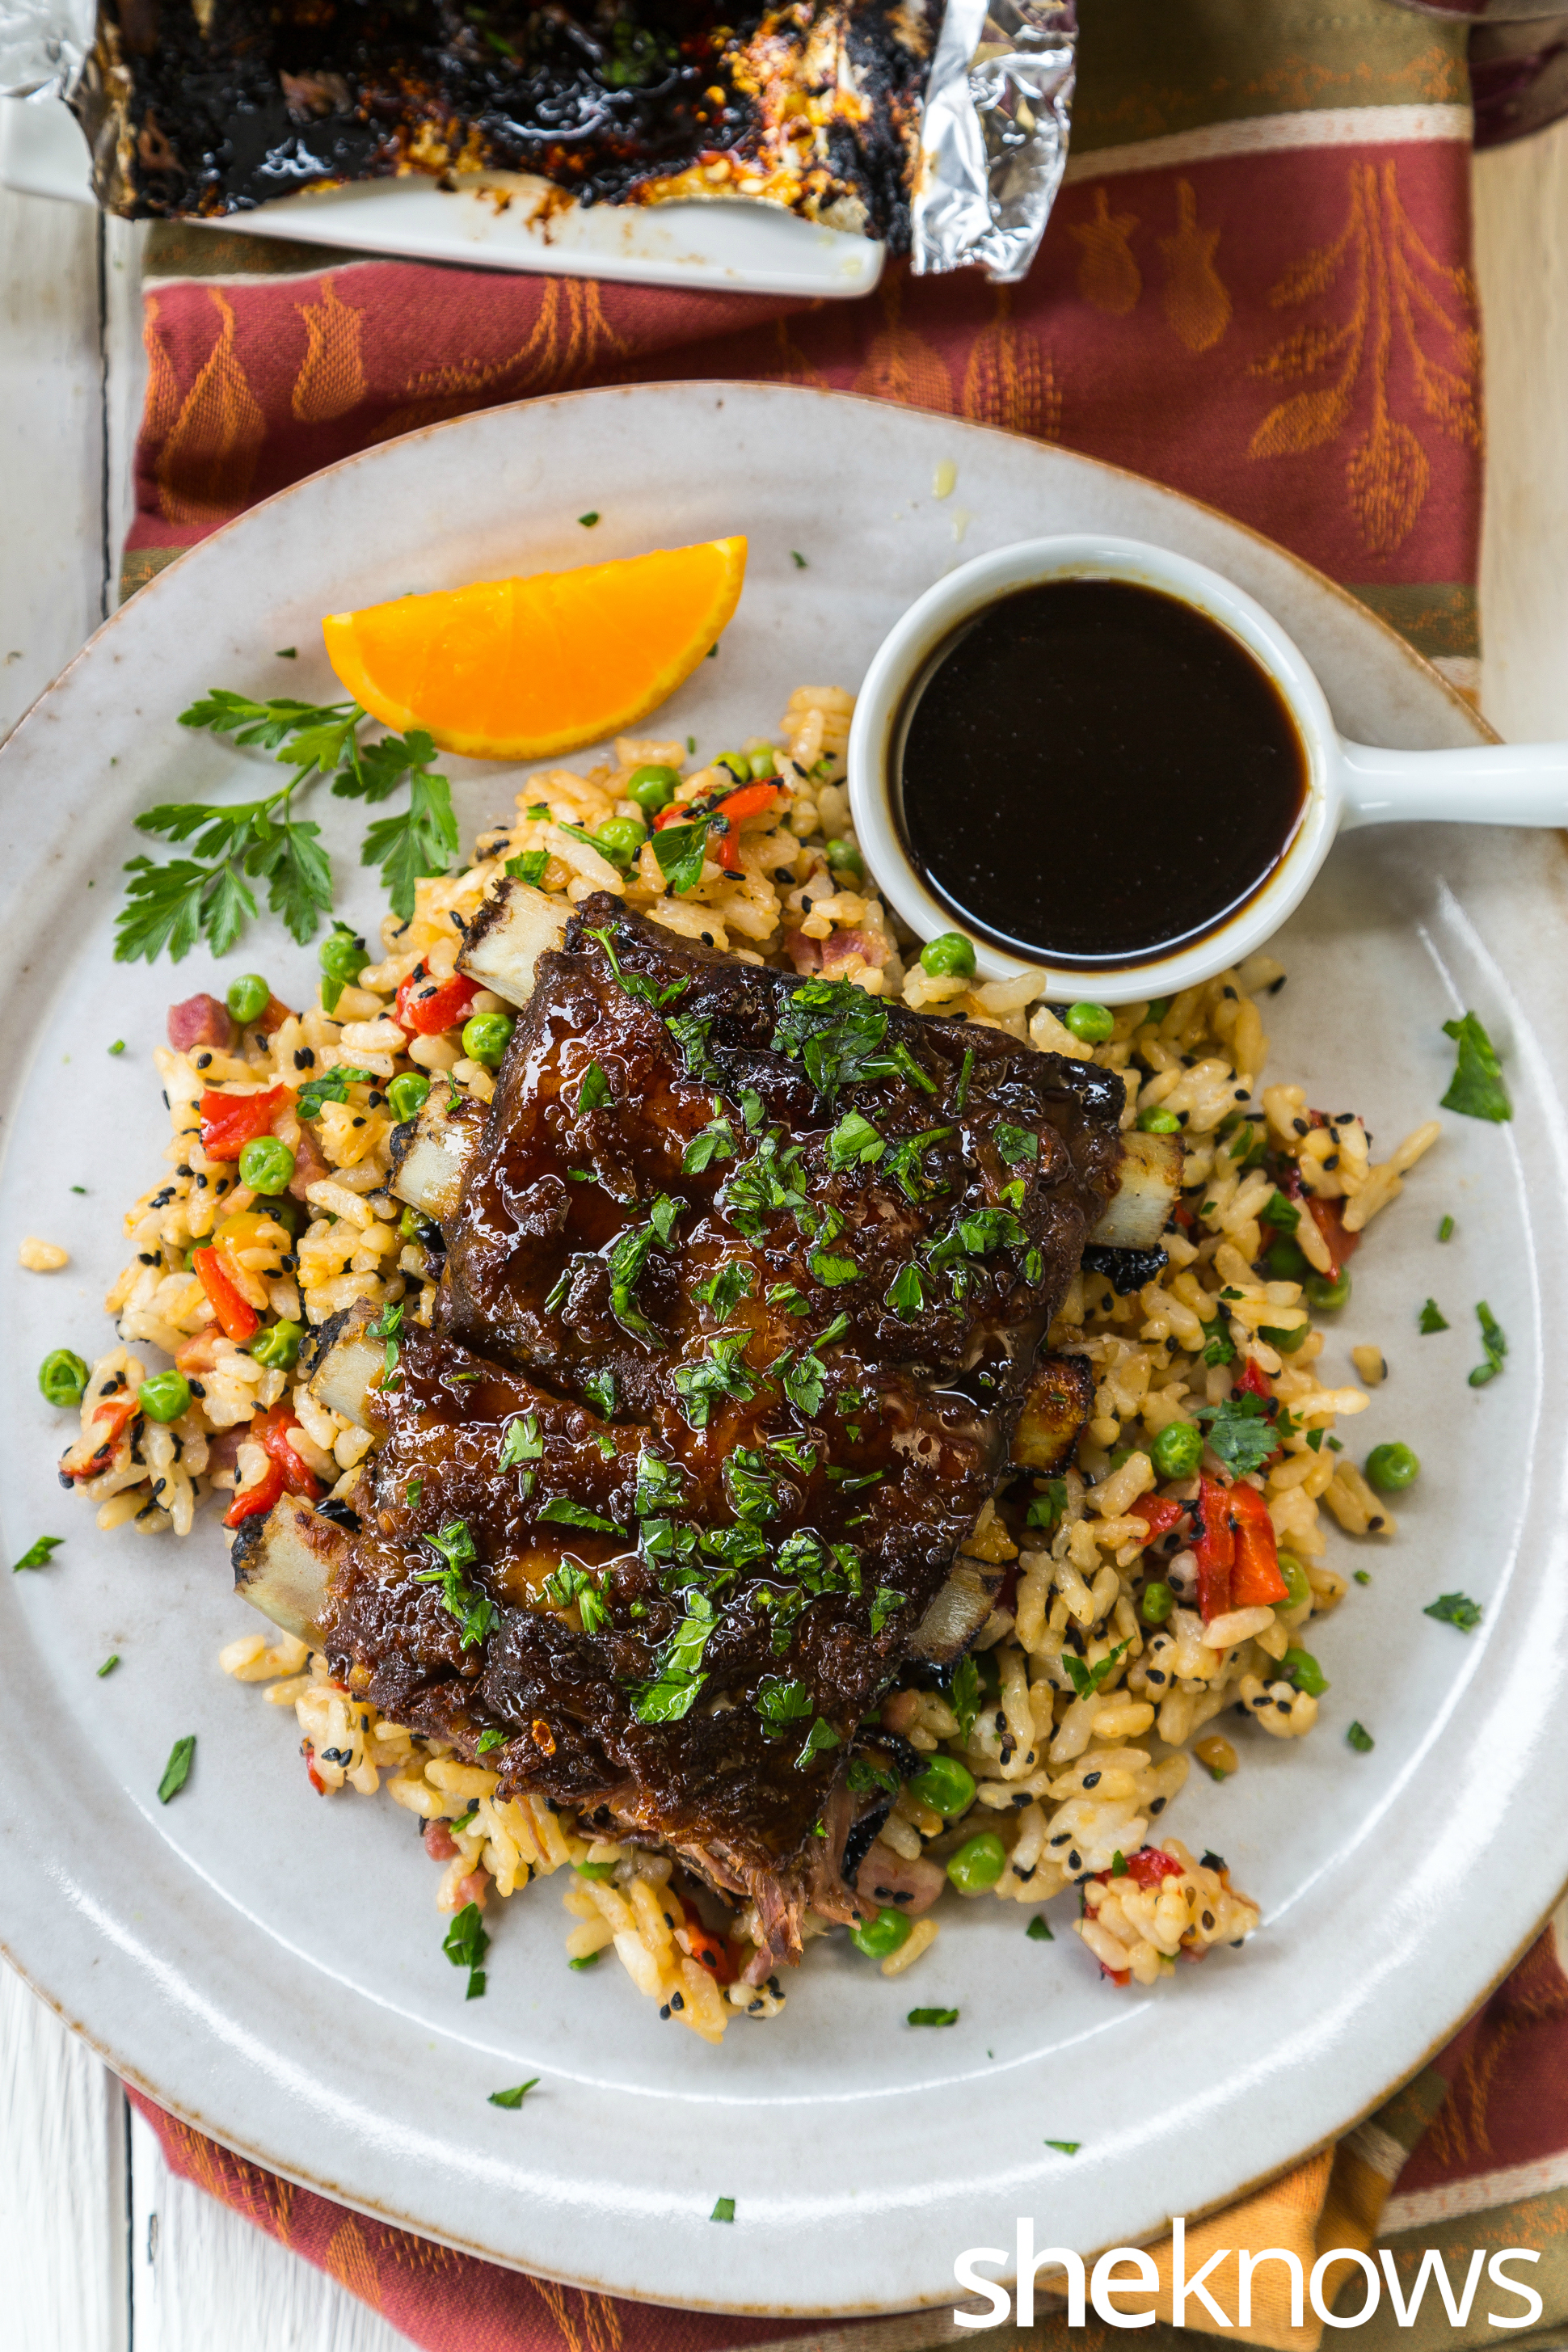 Baked orange-soy pork ribs with fried rice on plate